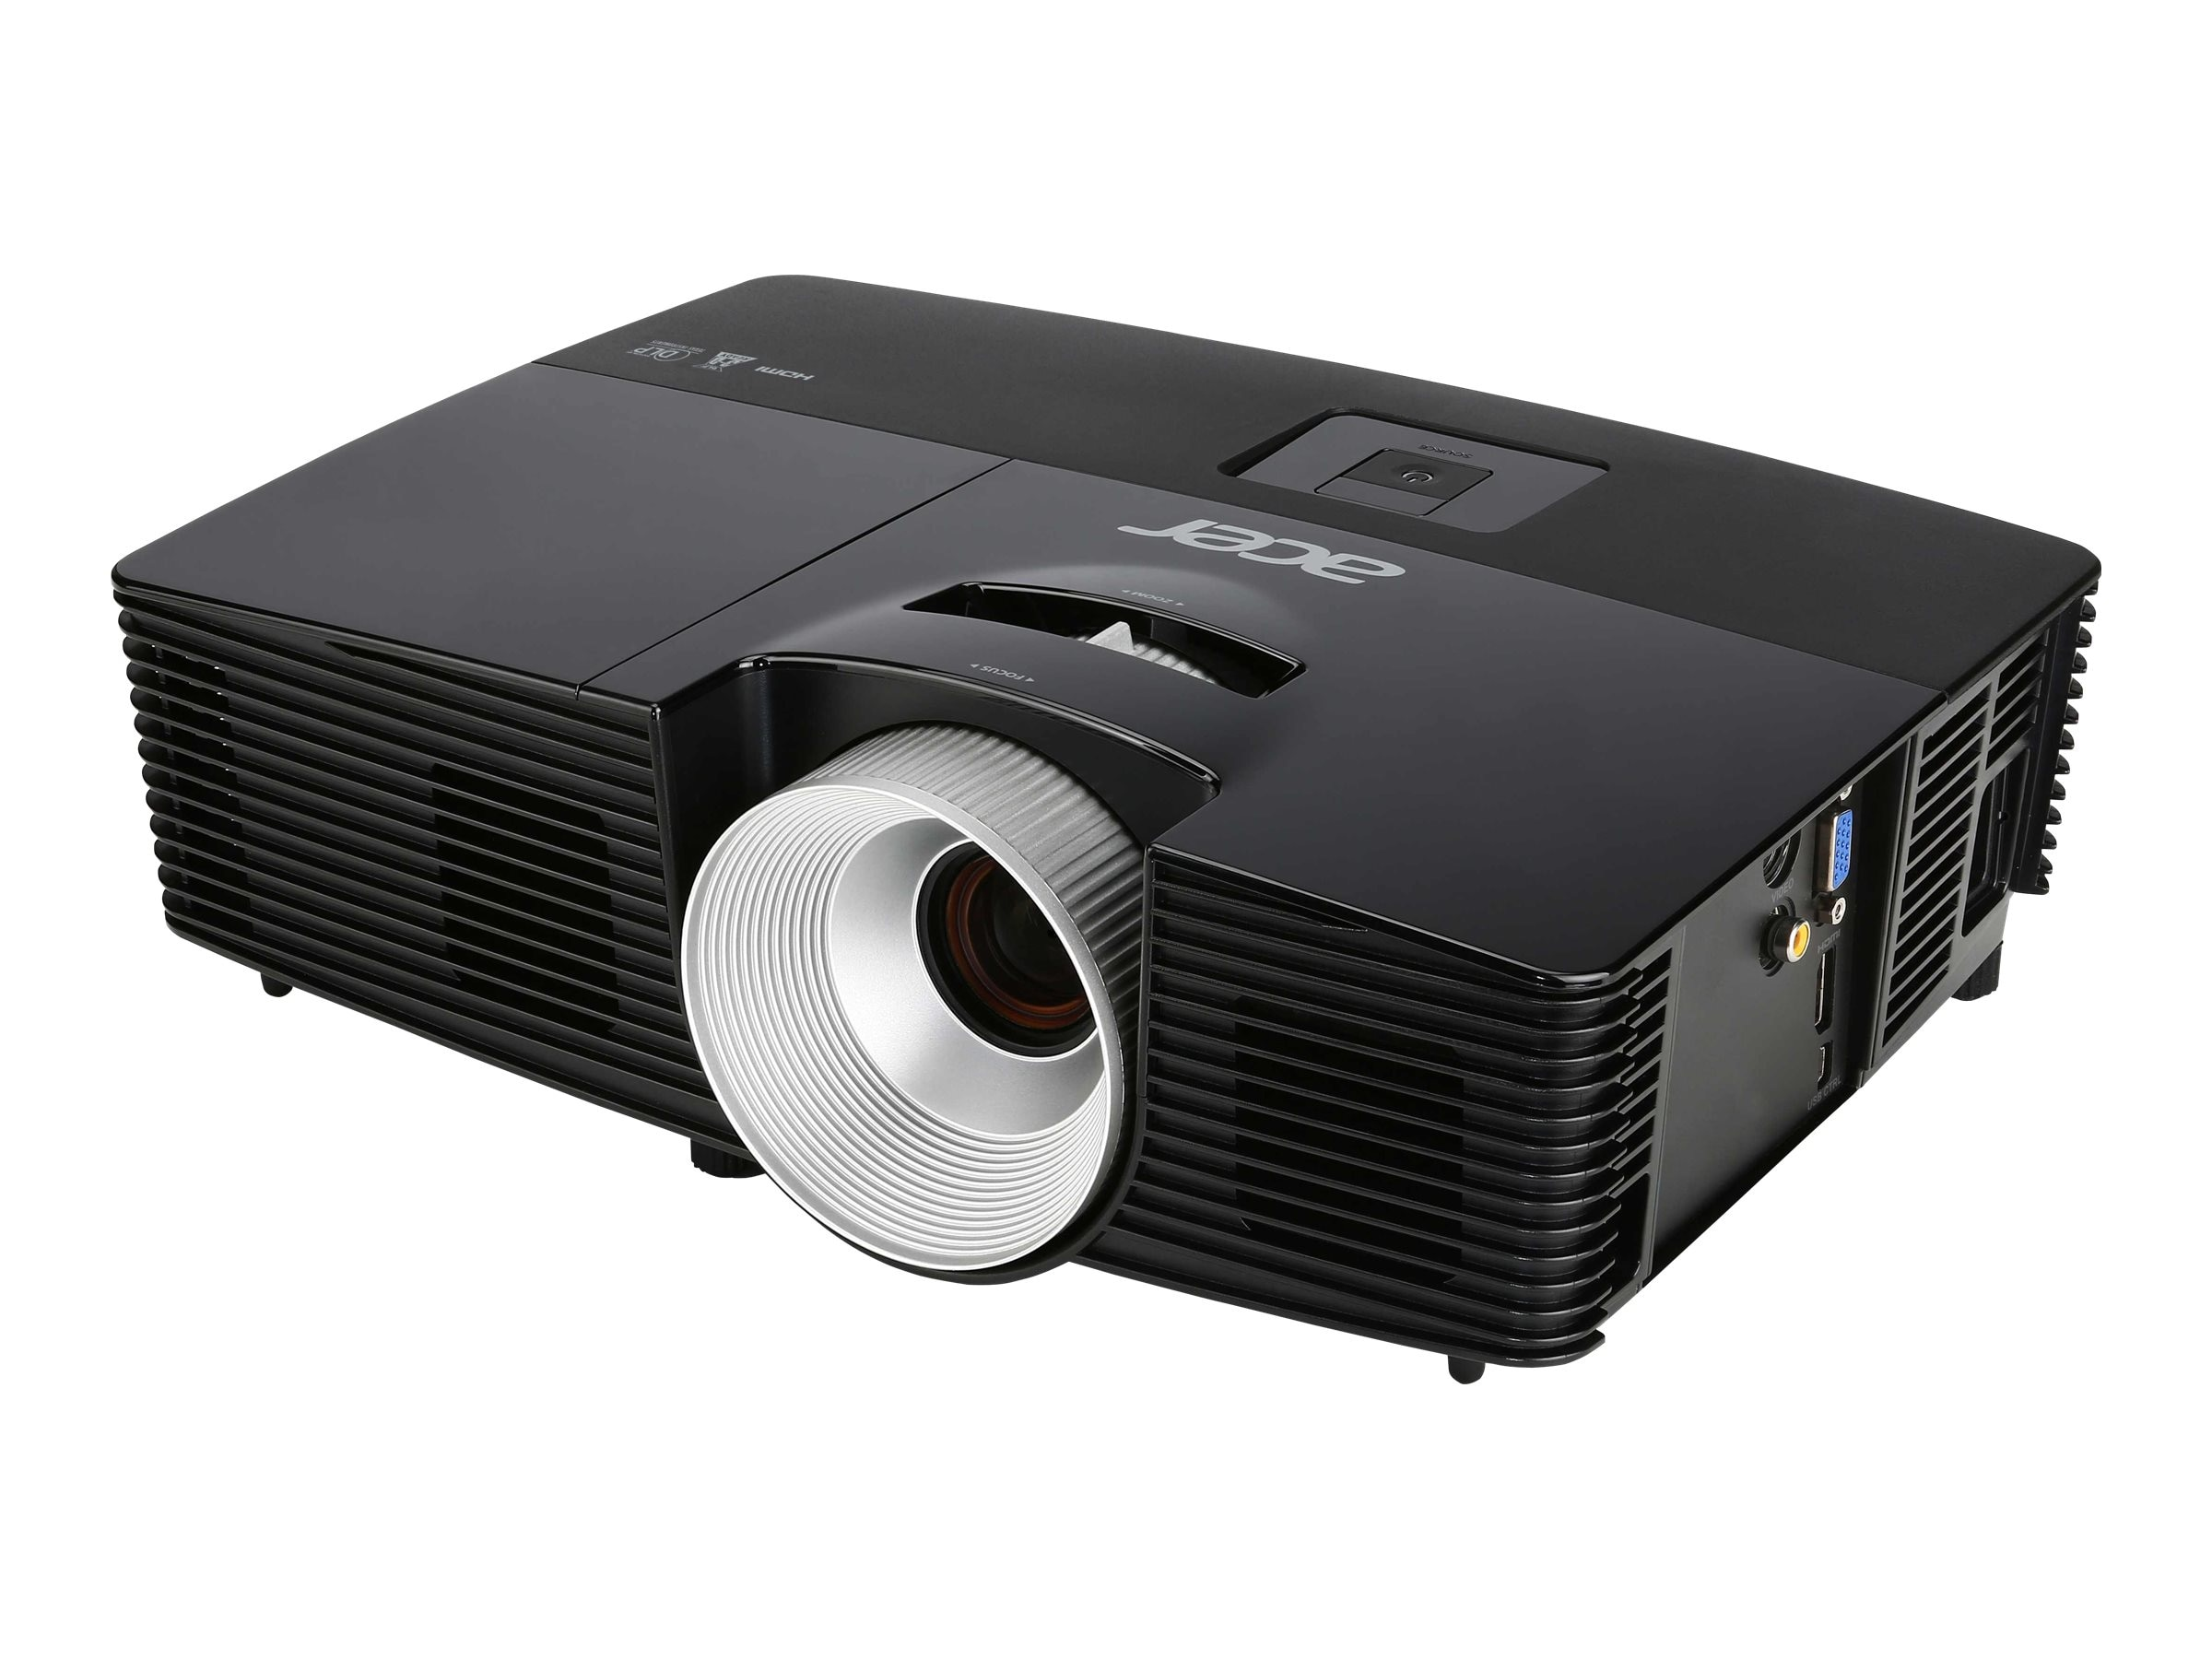 Acer X113PH SVGA DLP Projector, 3000 Lumens, Black, MR.JK611.008, 21484091, Projectors